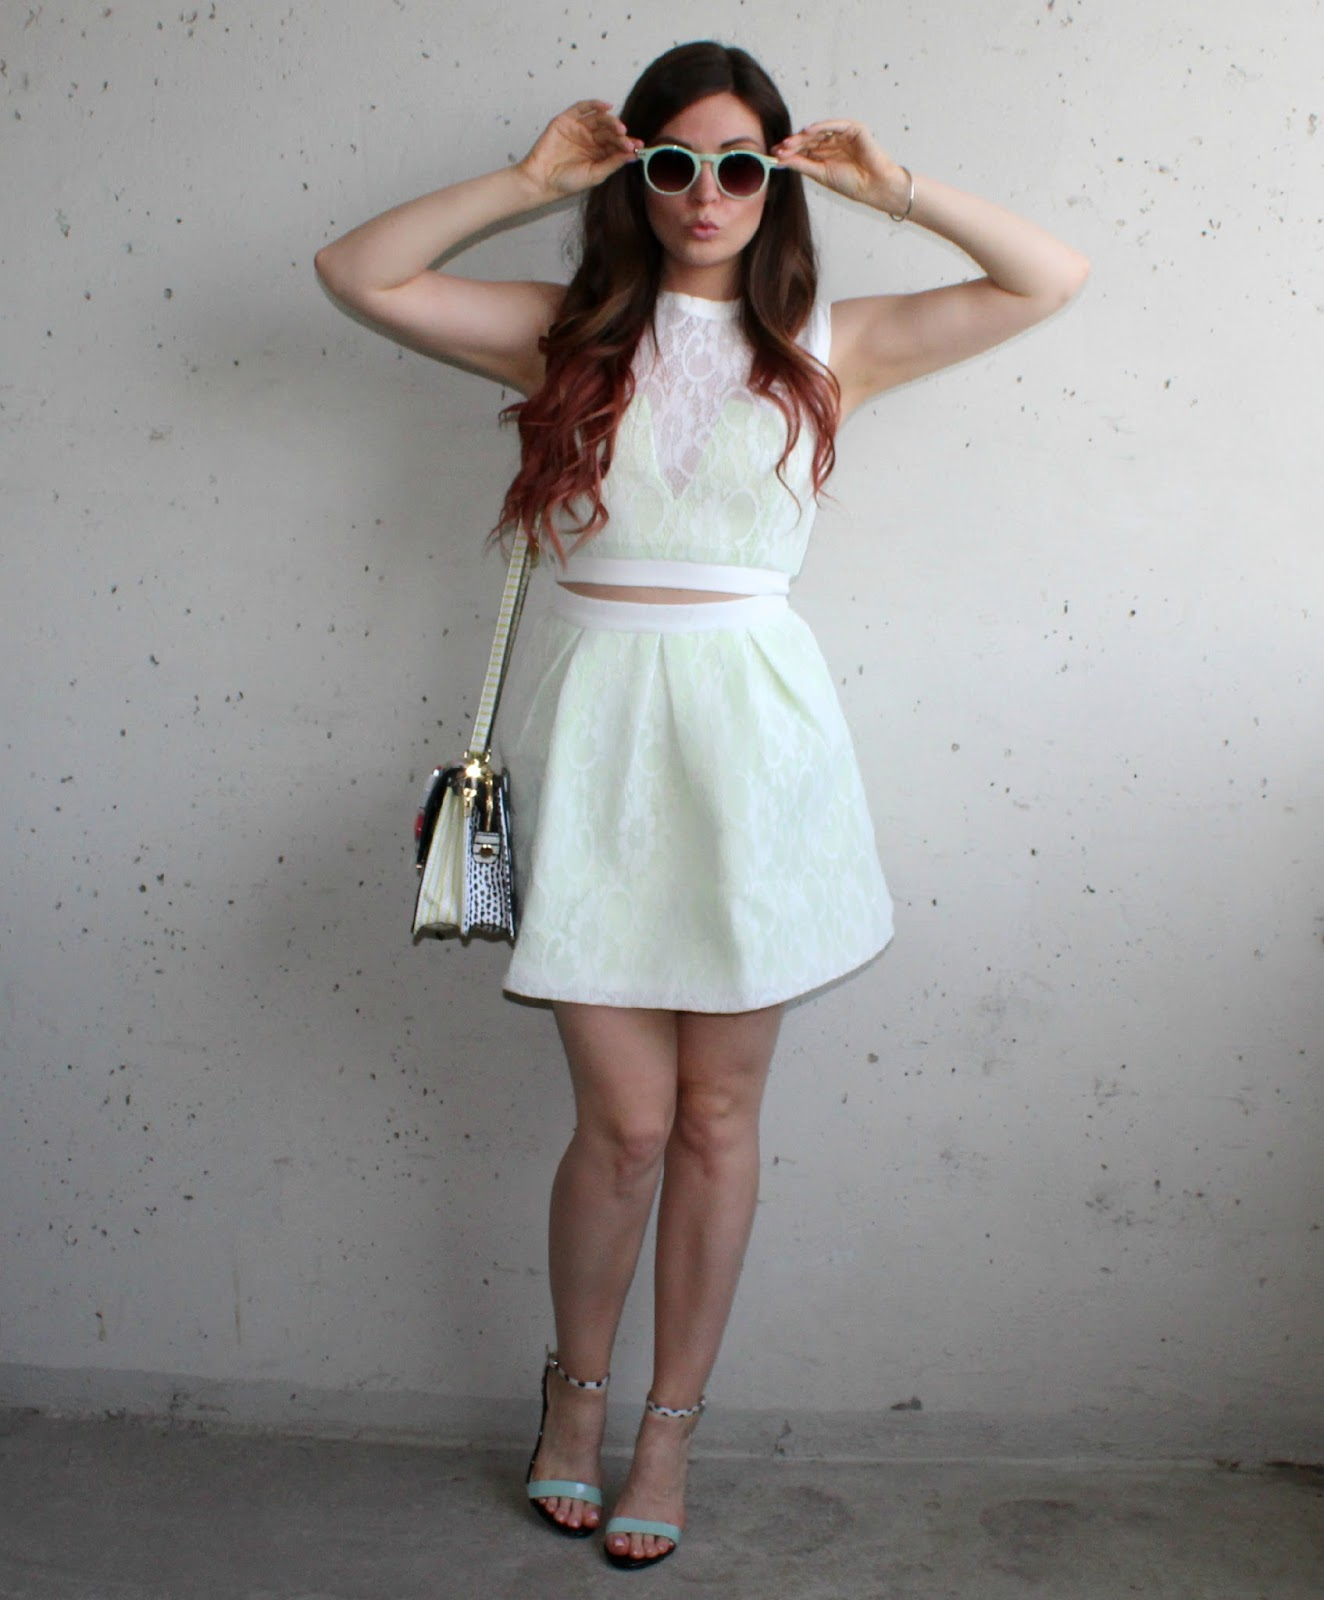 Crop Top and Skirt Combo, Aldo Strappy Heels